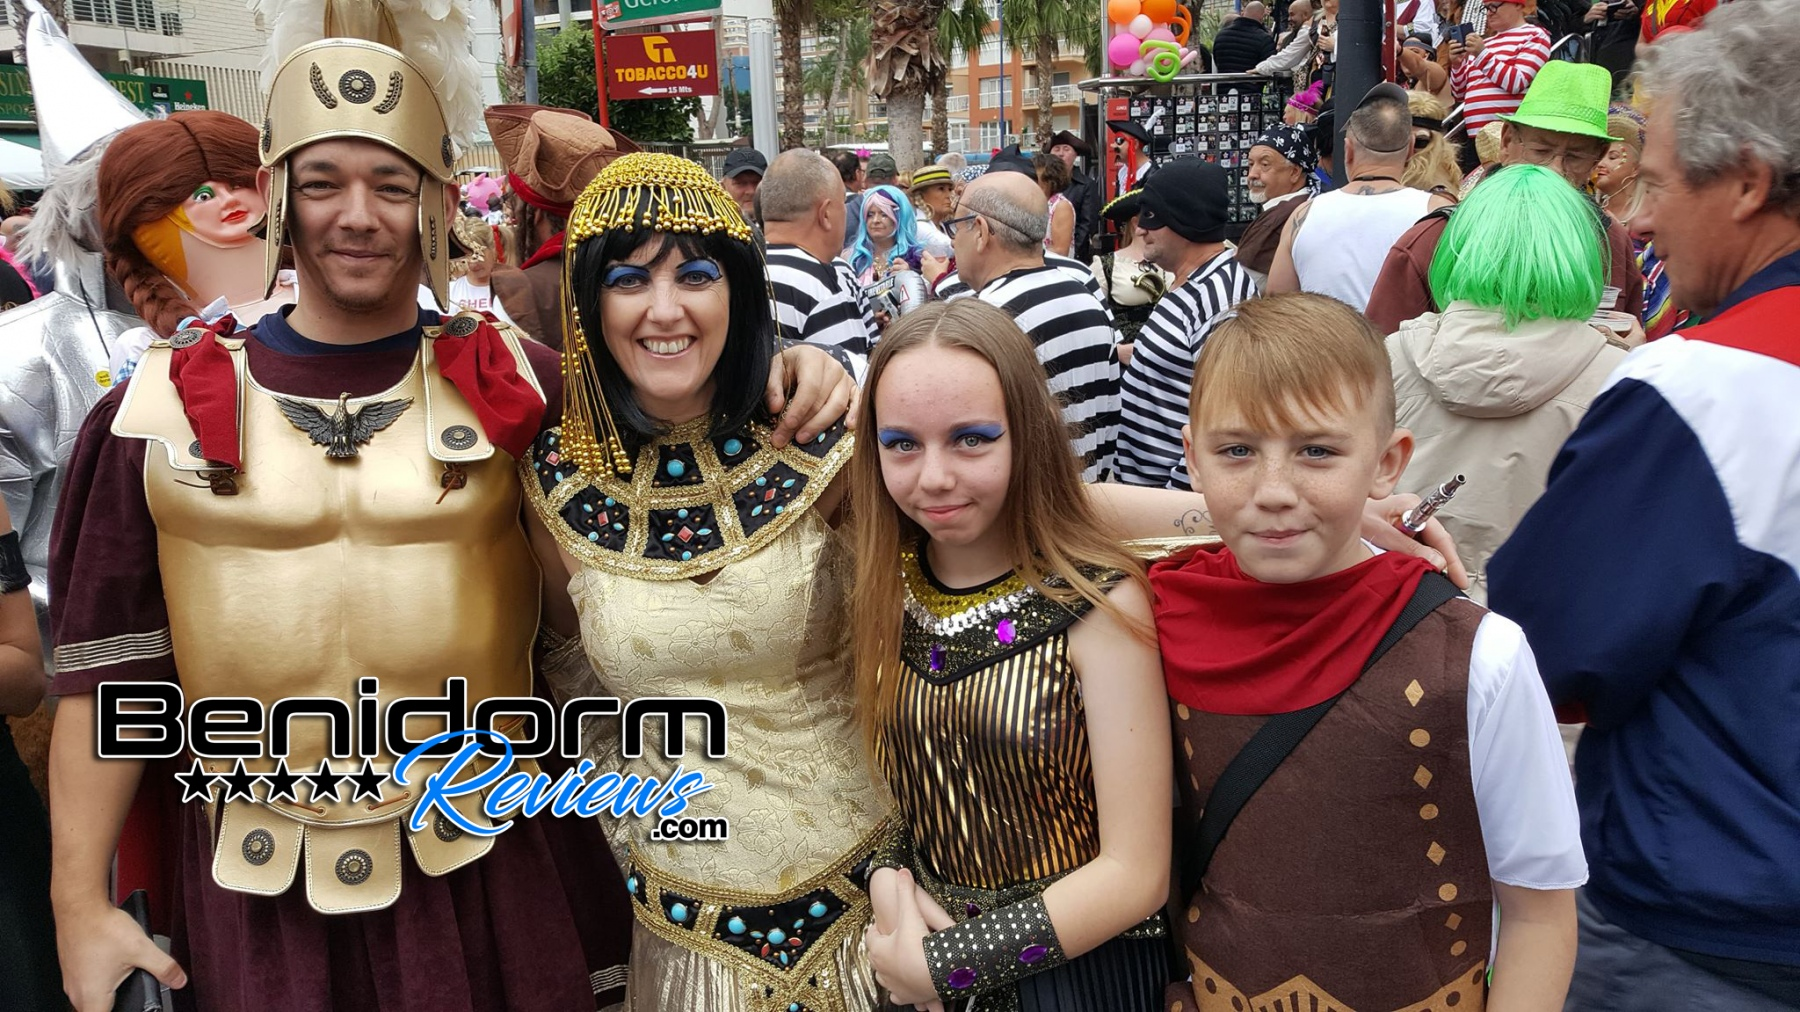 Benidorm-Fiestas-2019-Fancy-Dress-152